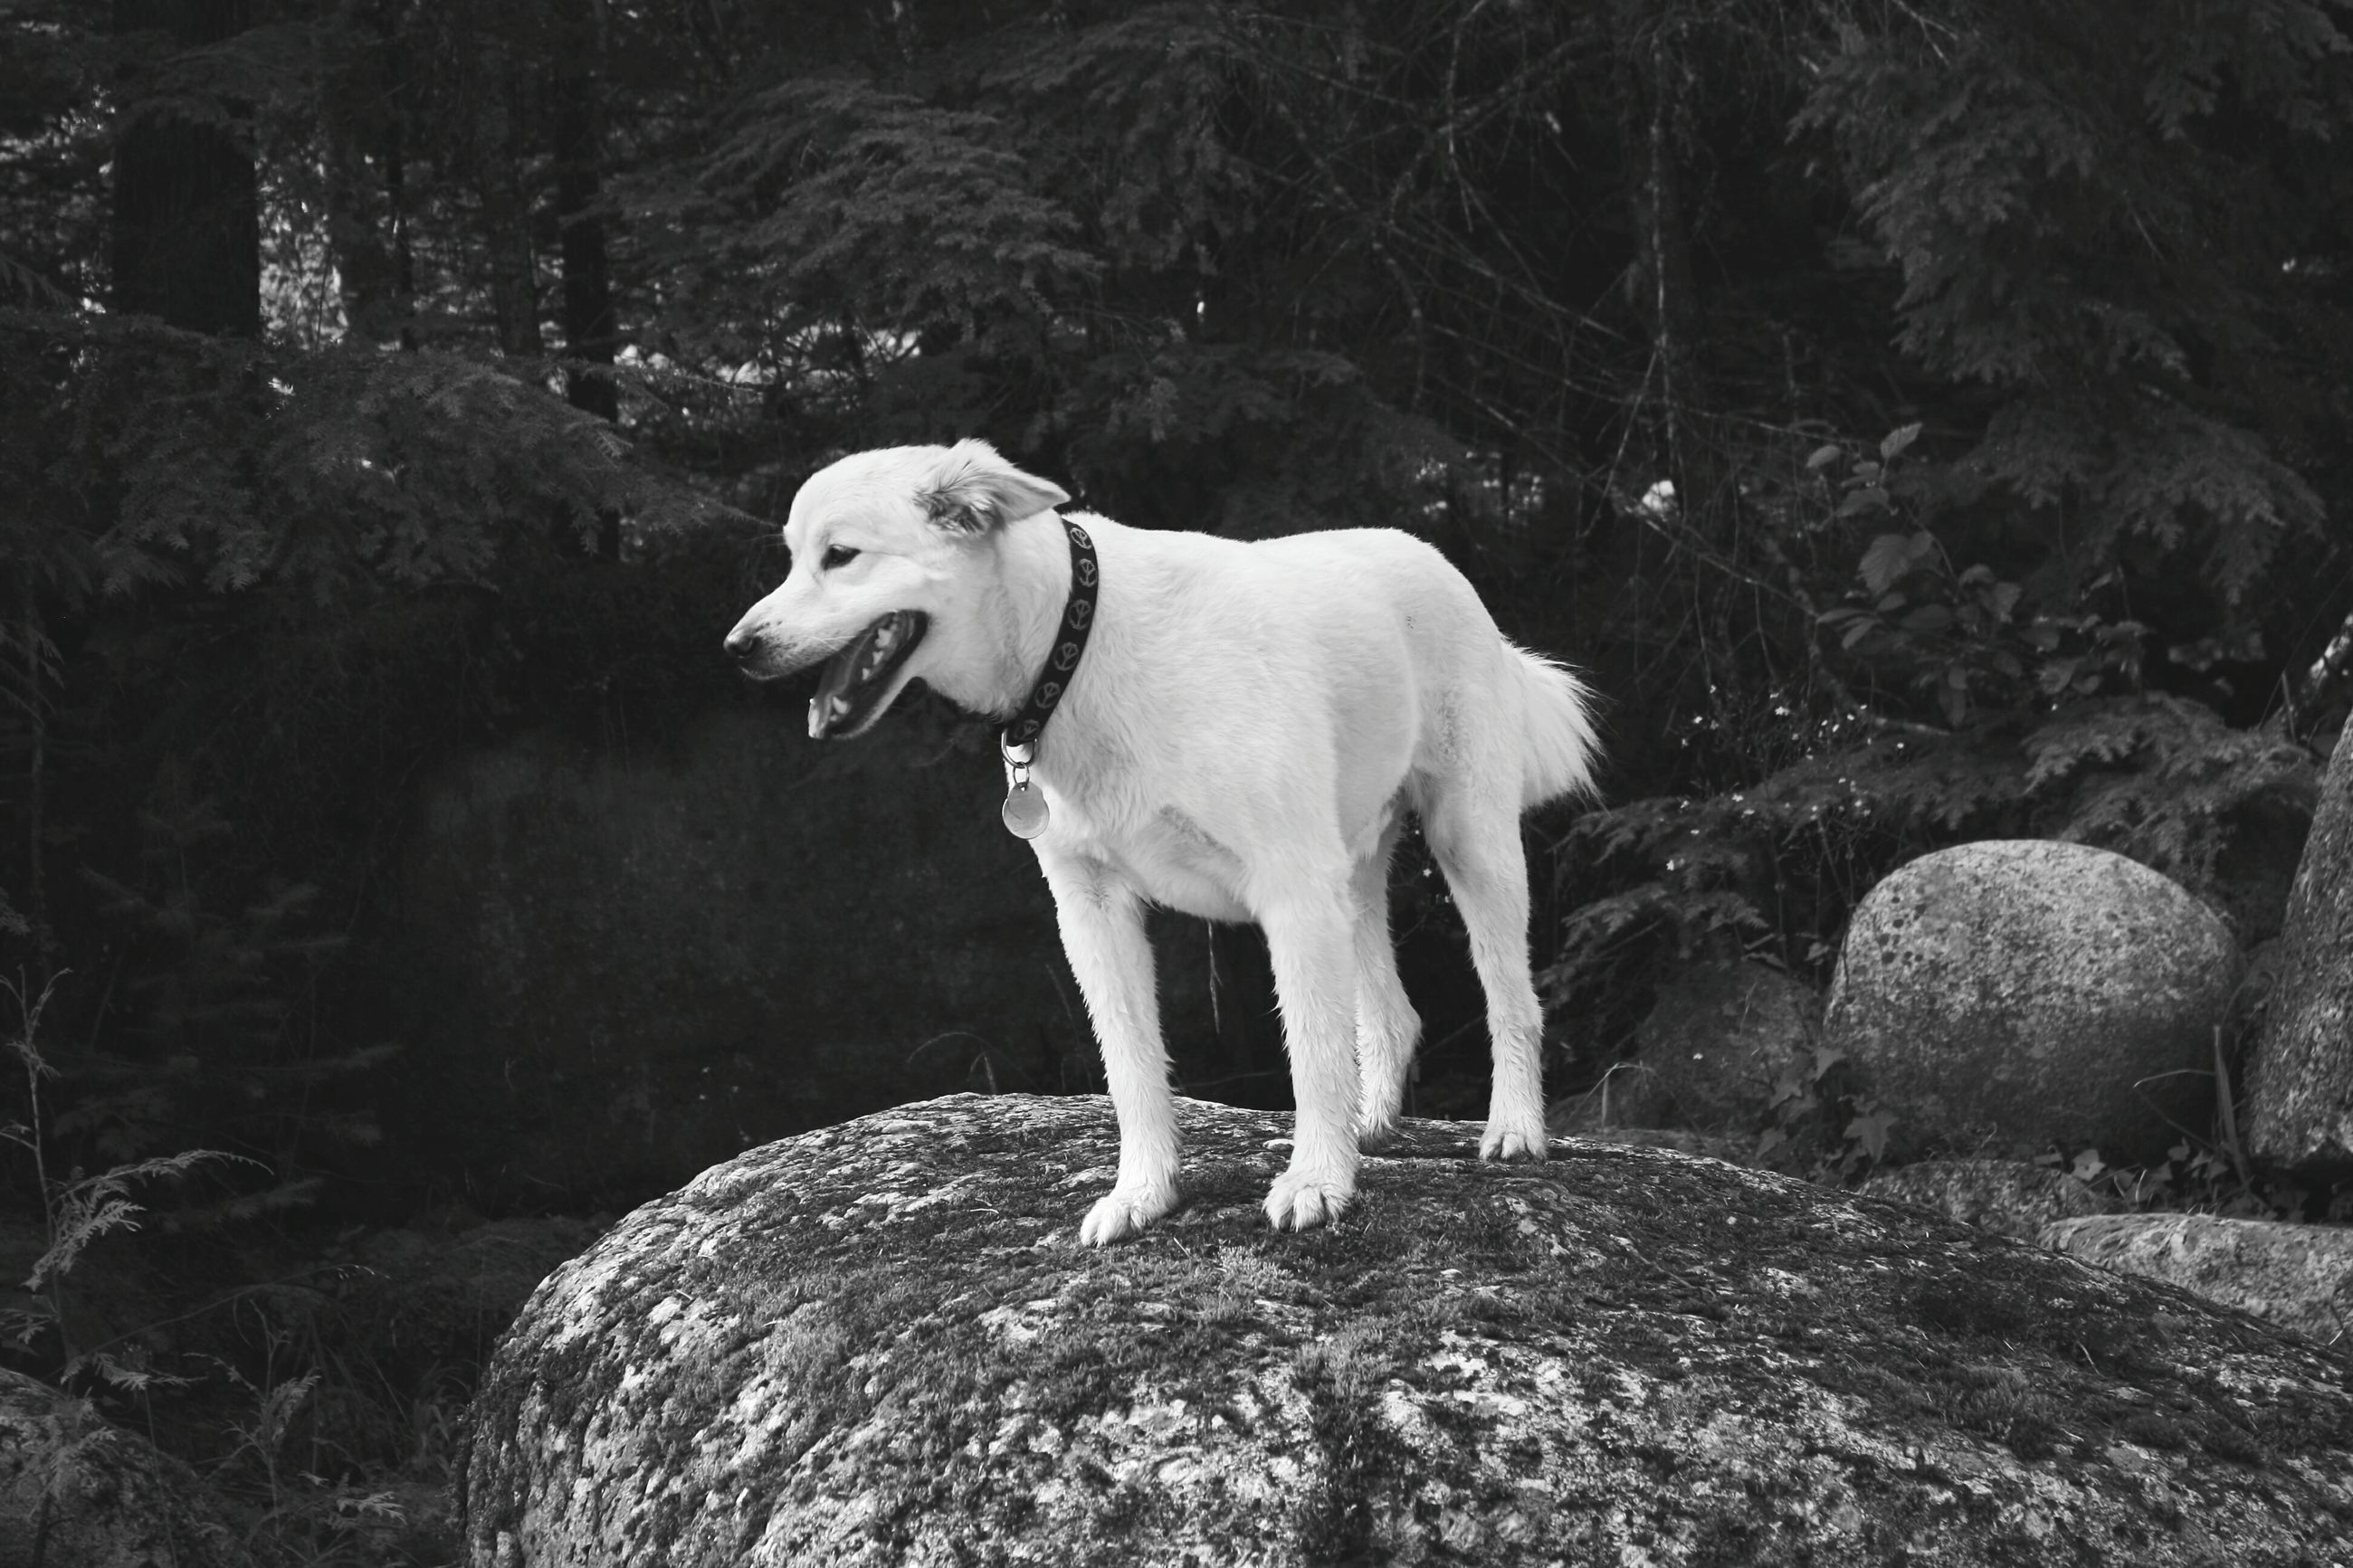 animal themes, one animal, mammal, domestic animals, full length, pets, standing, rock - object, dog, side view, nature, field, white color, grass, zoology, day, outdoors, no people, walking, wildlife